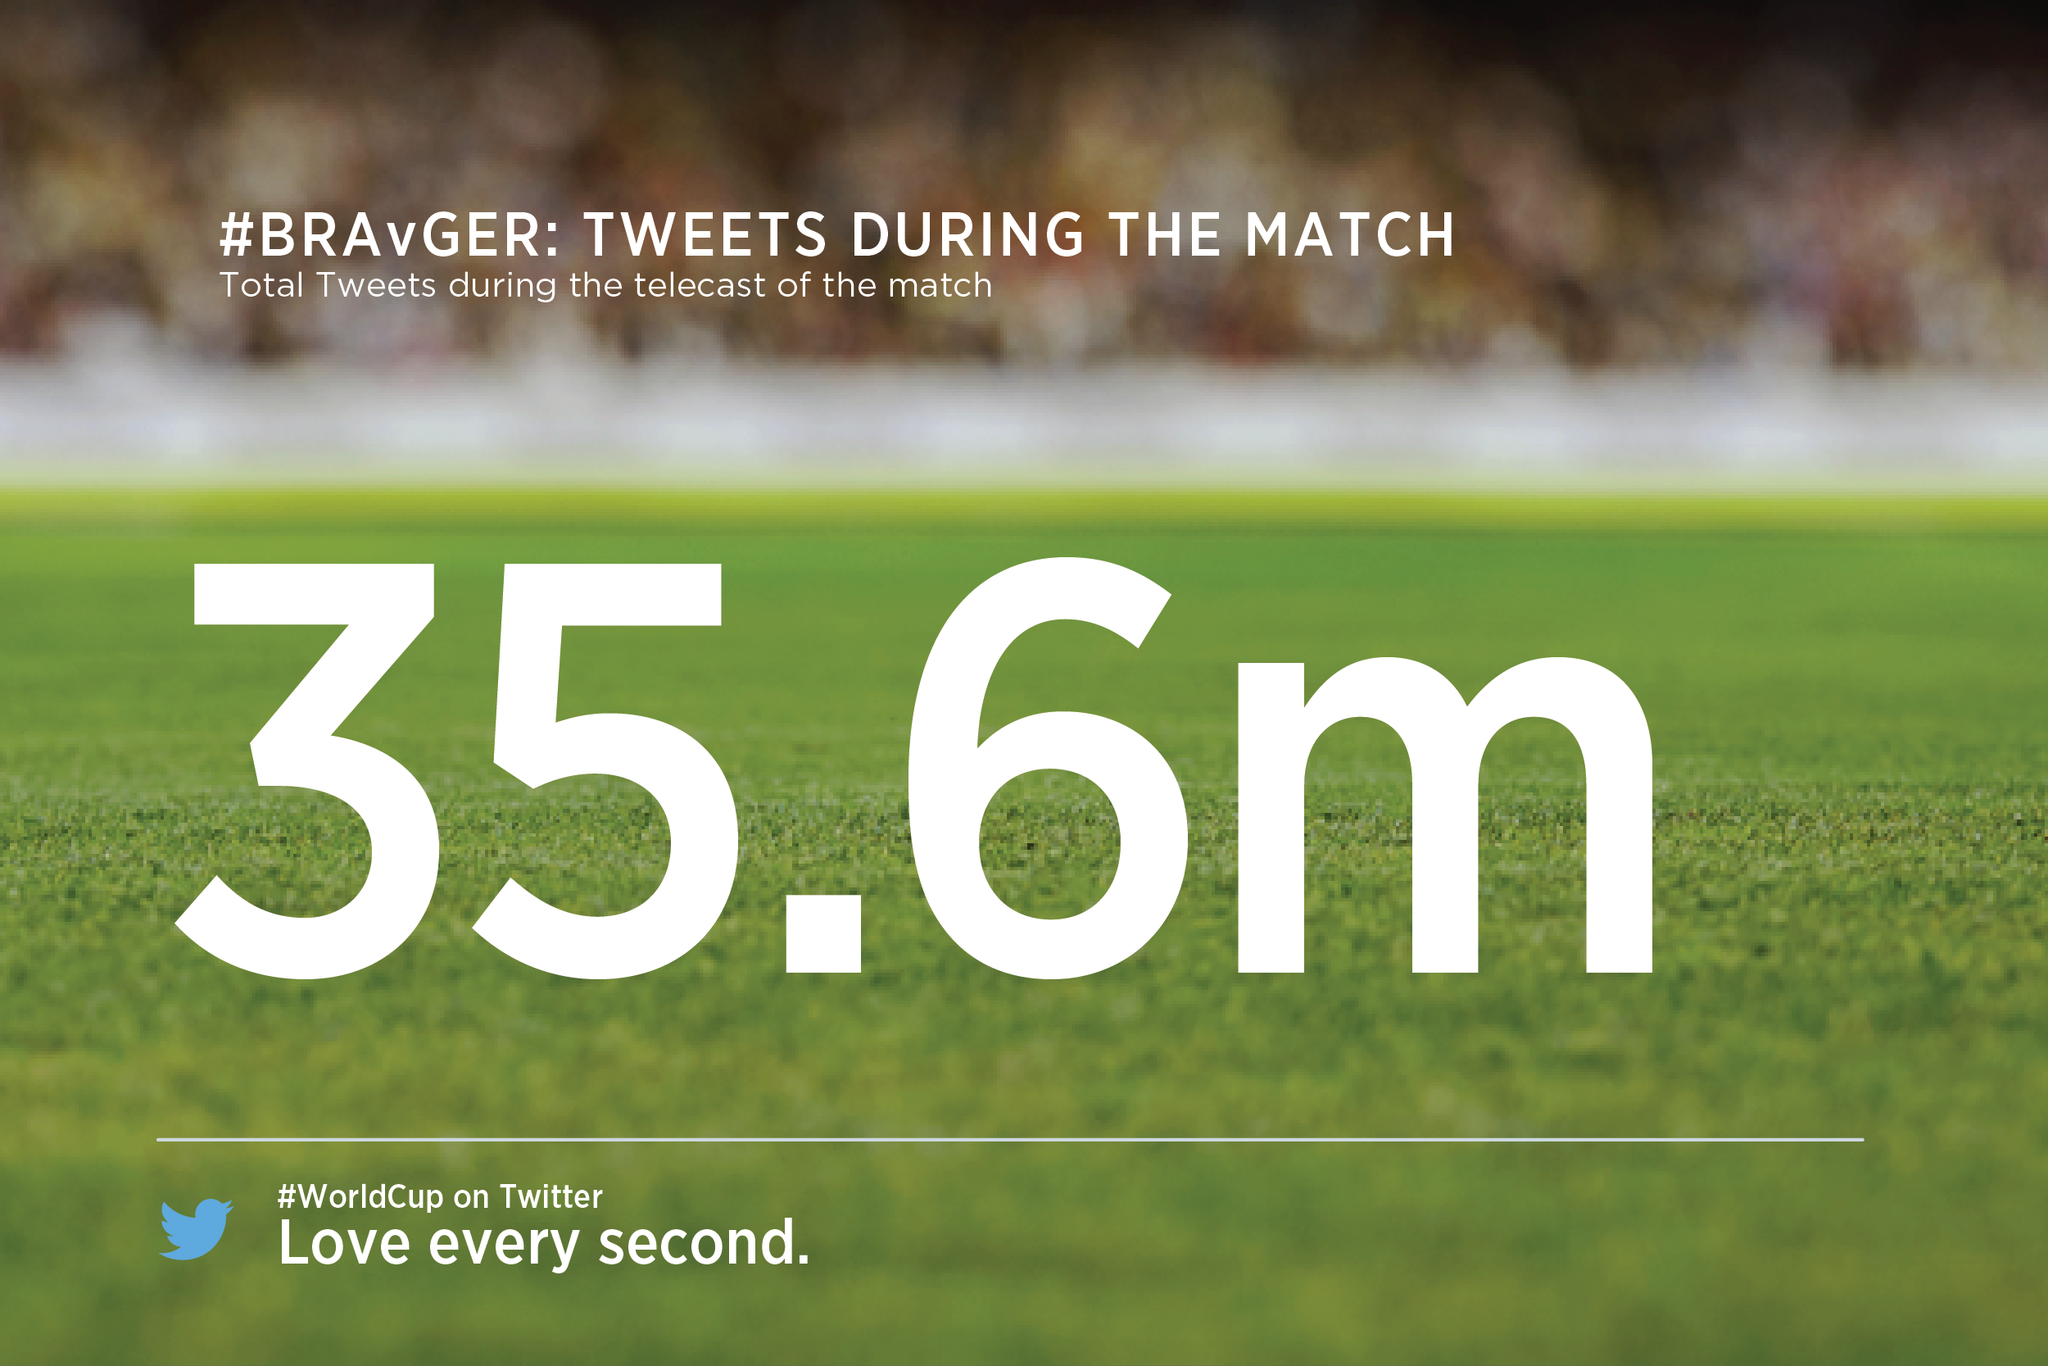 Twitter / TwitterData: With 35.6 million Tweets, #BRA ...